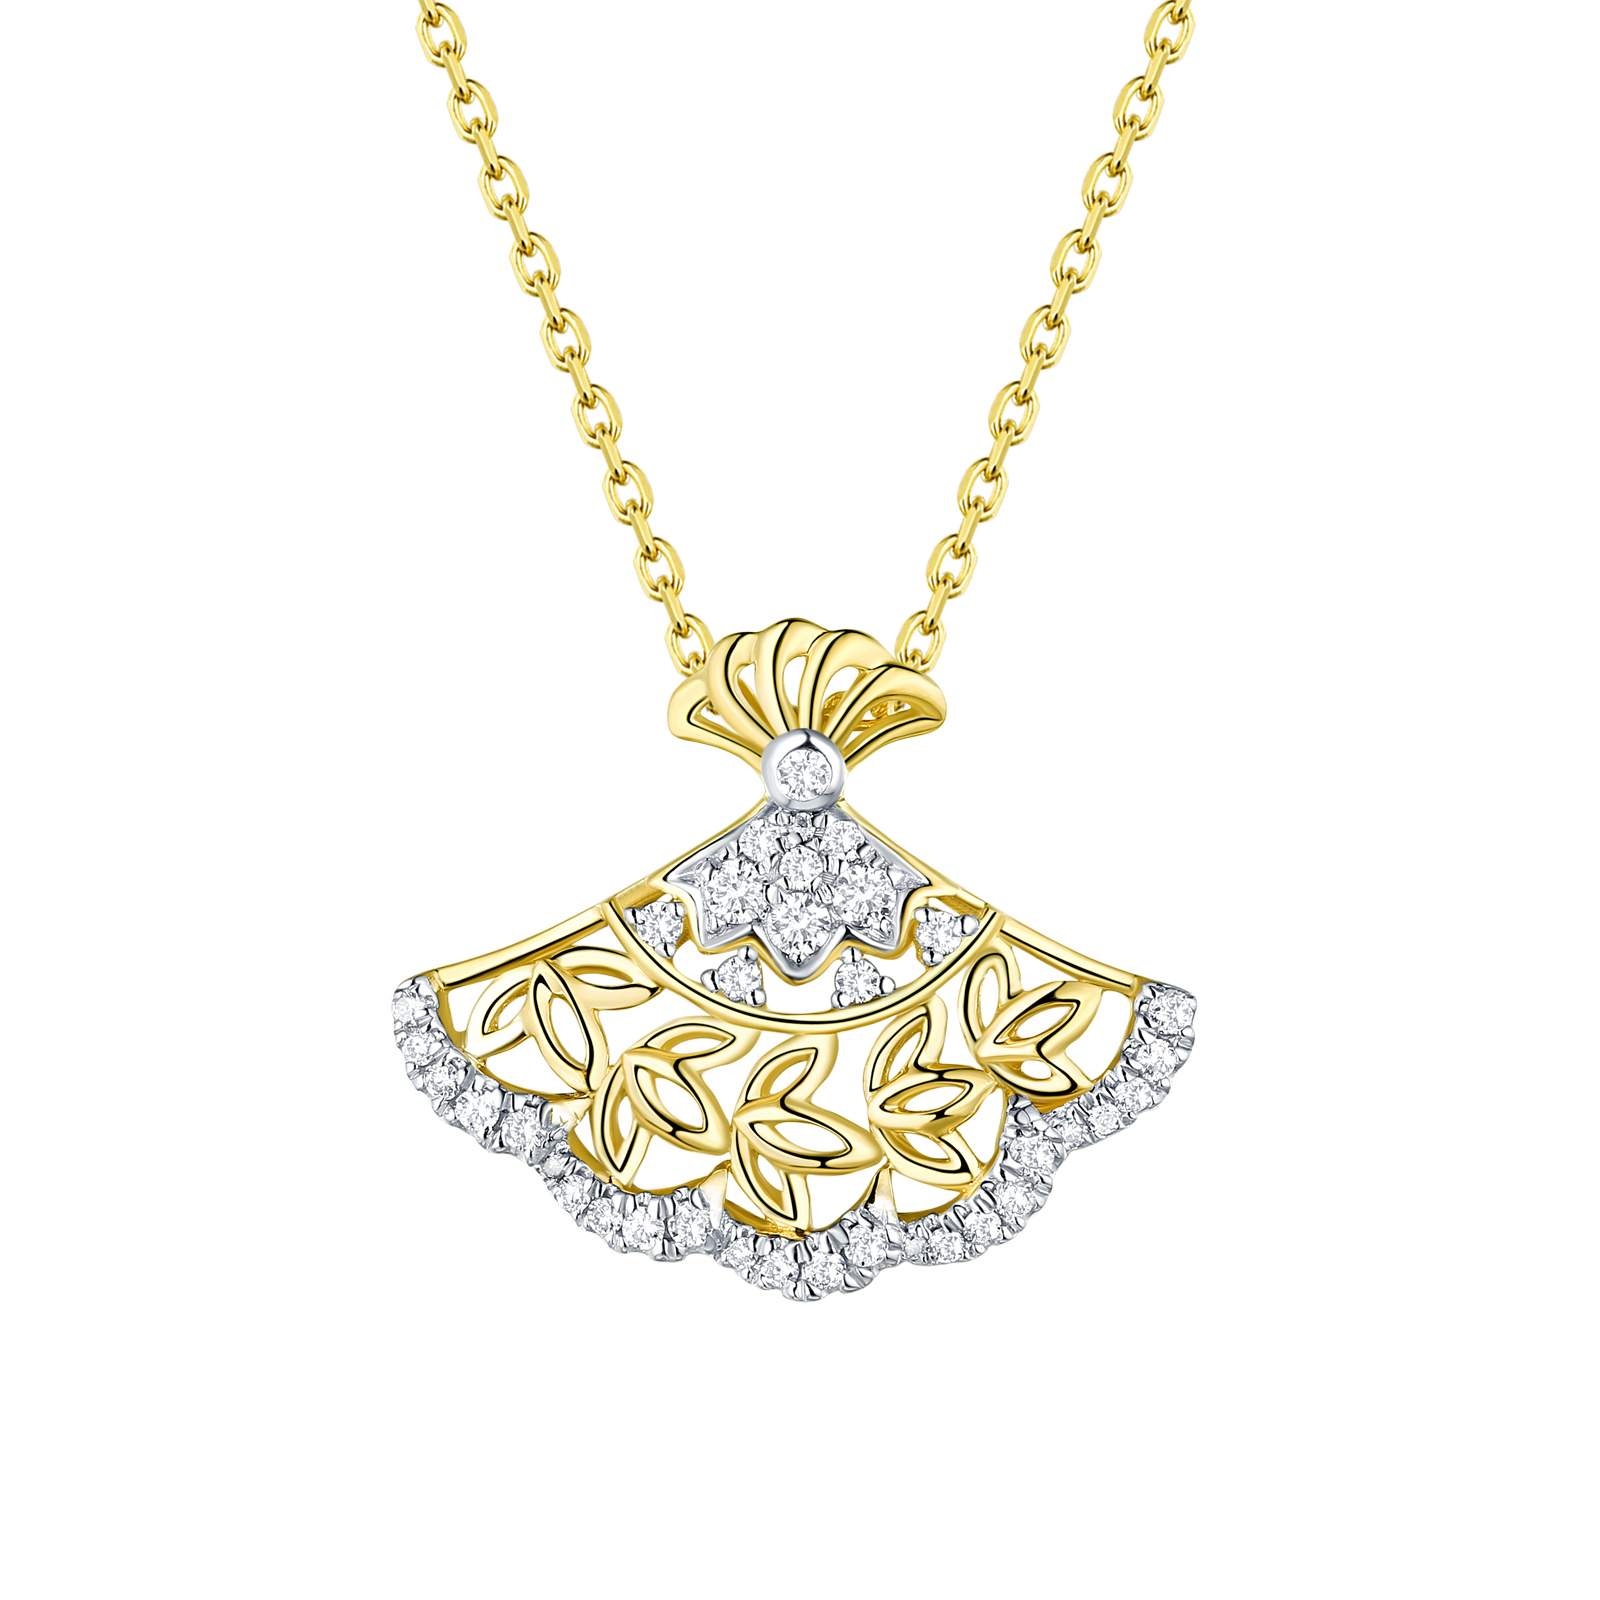 P29921WHT- 14K Yellow Gold Diamond Pendant, 0.17 TCW